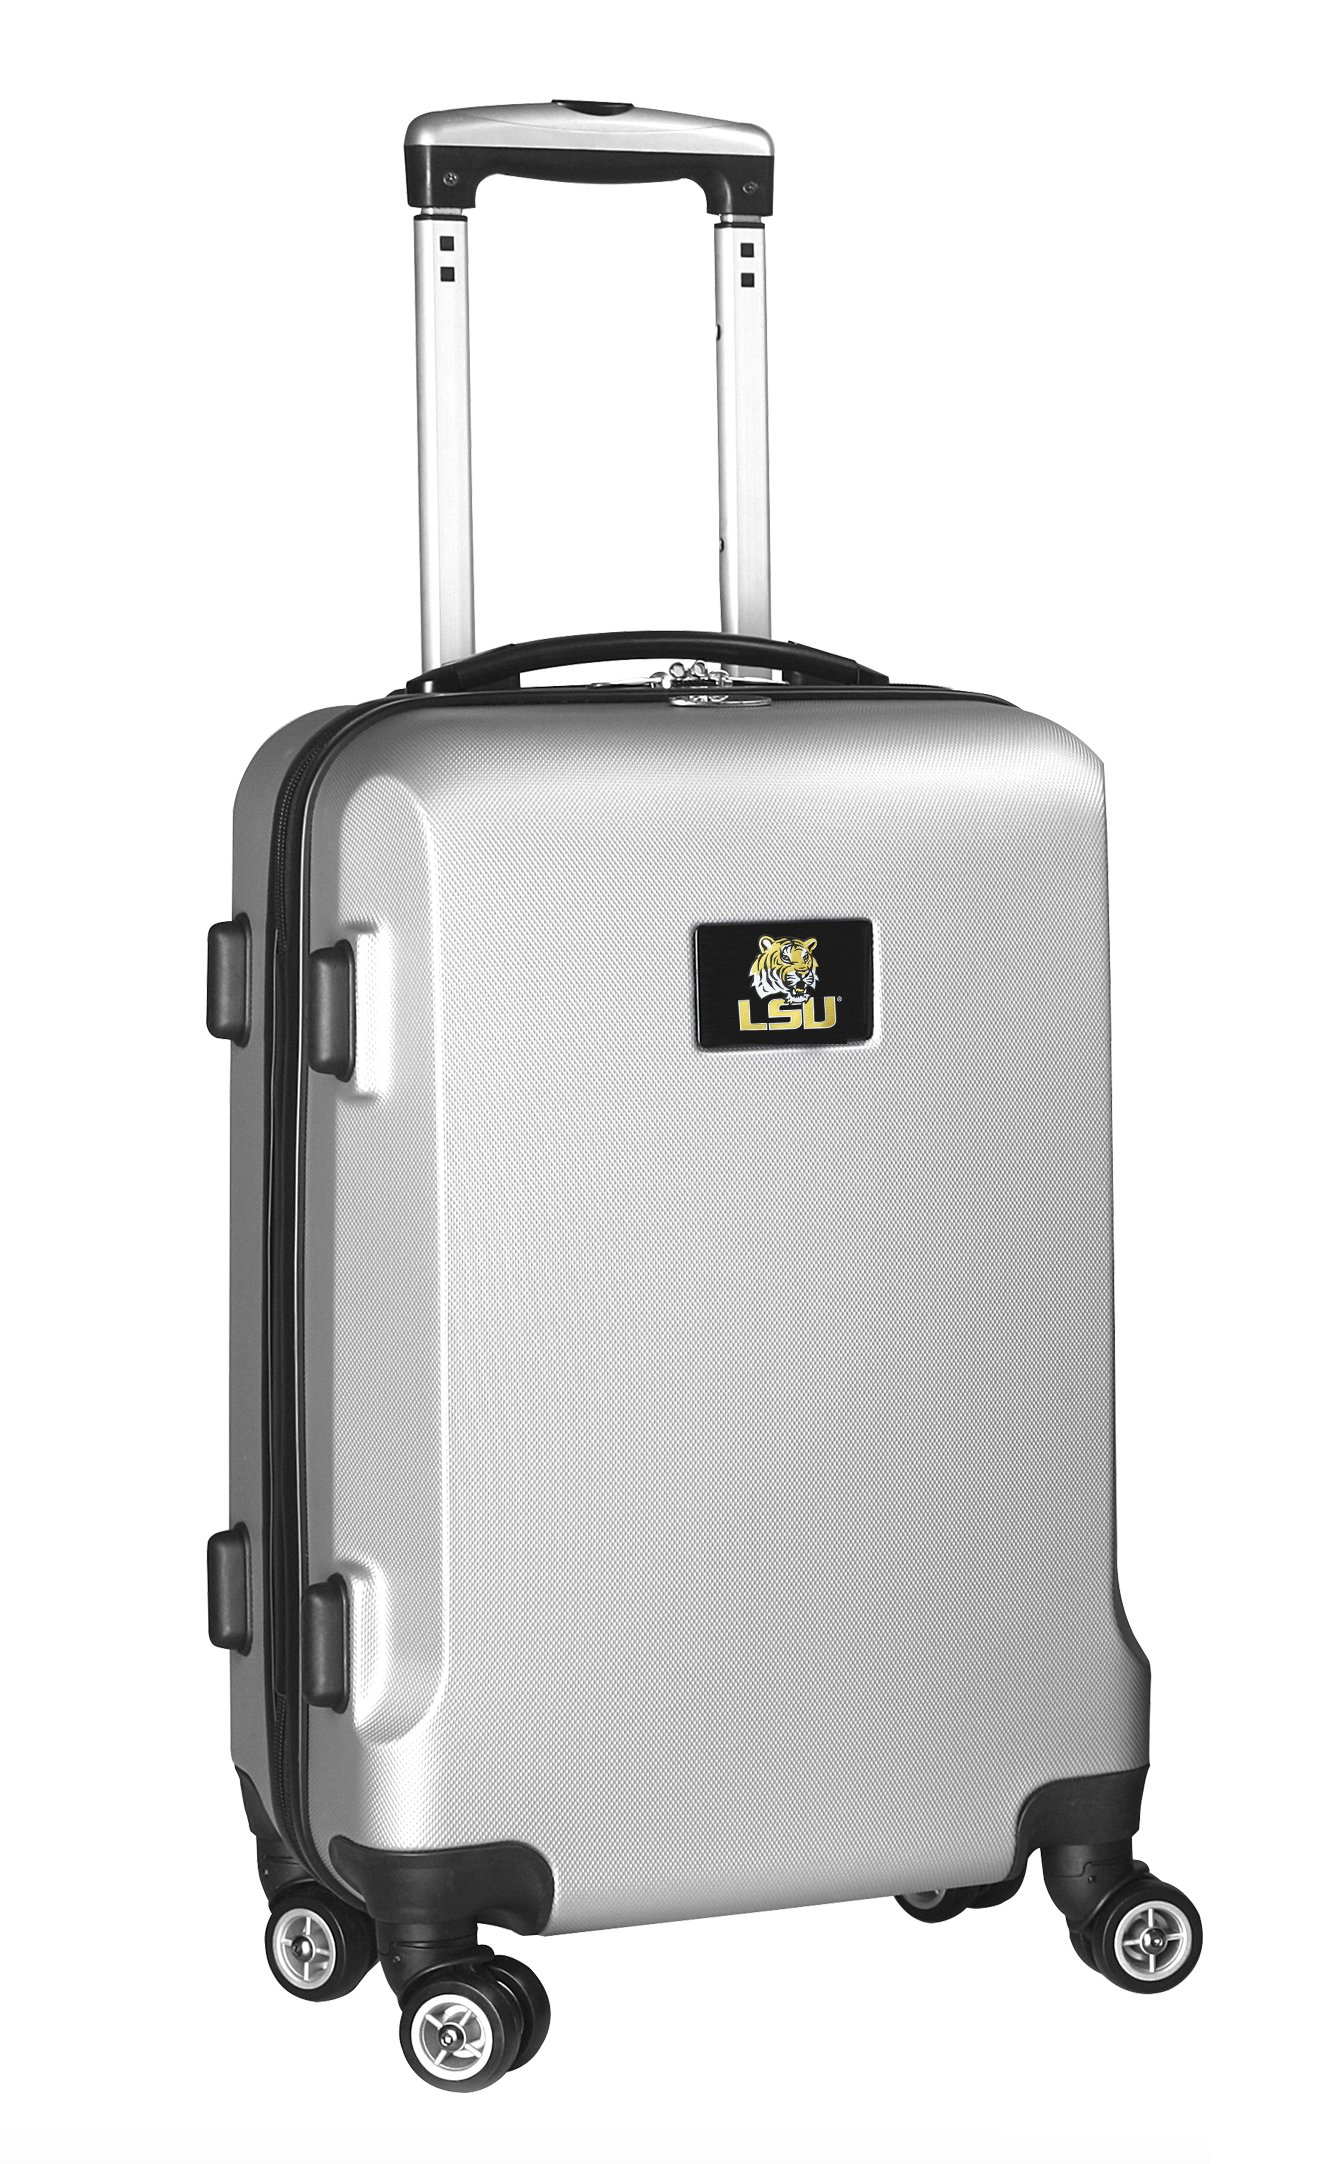 NCAA LSU Tigers Carry-On Hardcase Spinner, Silver by Denco